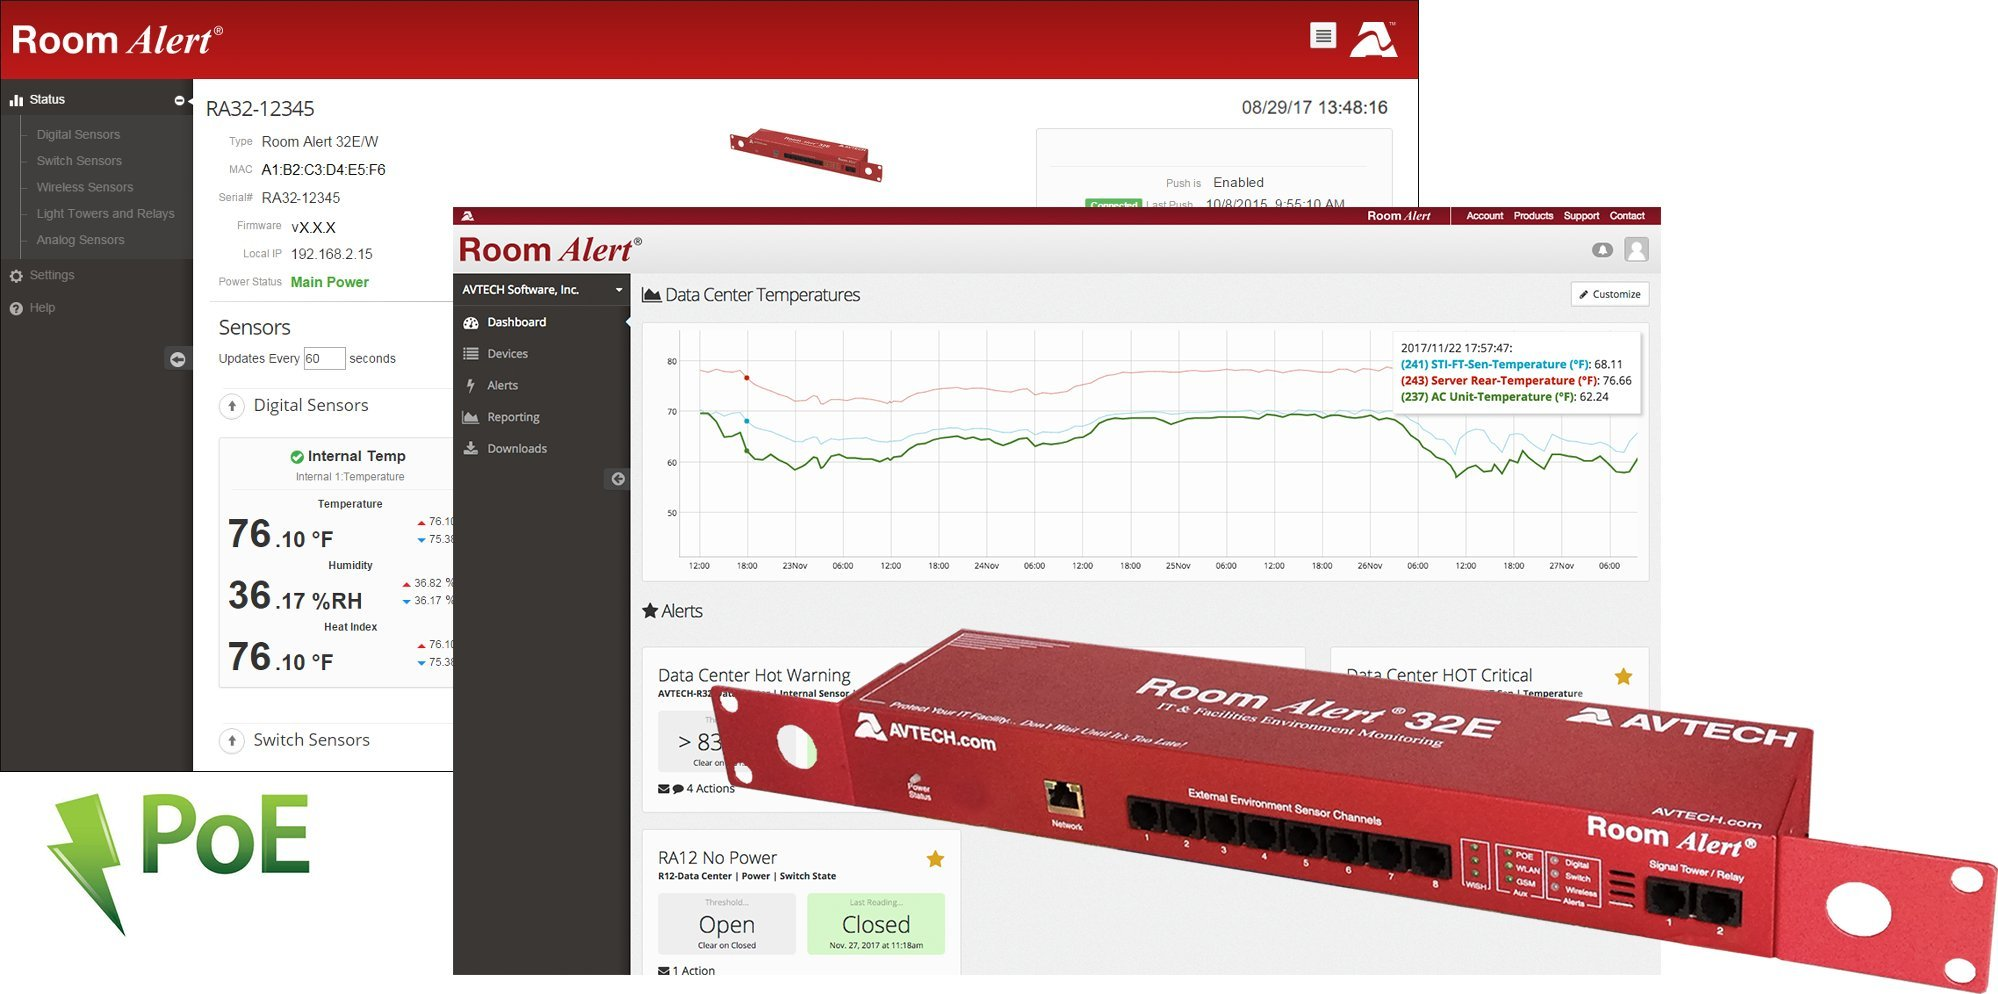 Room Alert 32E - Advanced Temperature and Environment Monitor w/PoE, 8 Digital Ports, 16 Switch Channels, and more